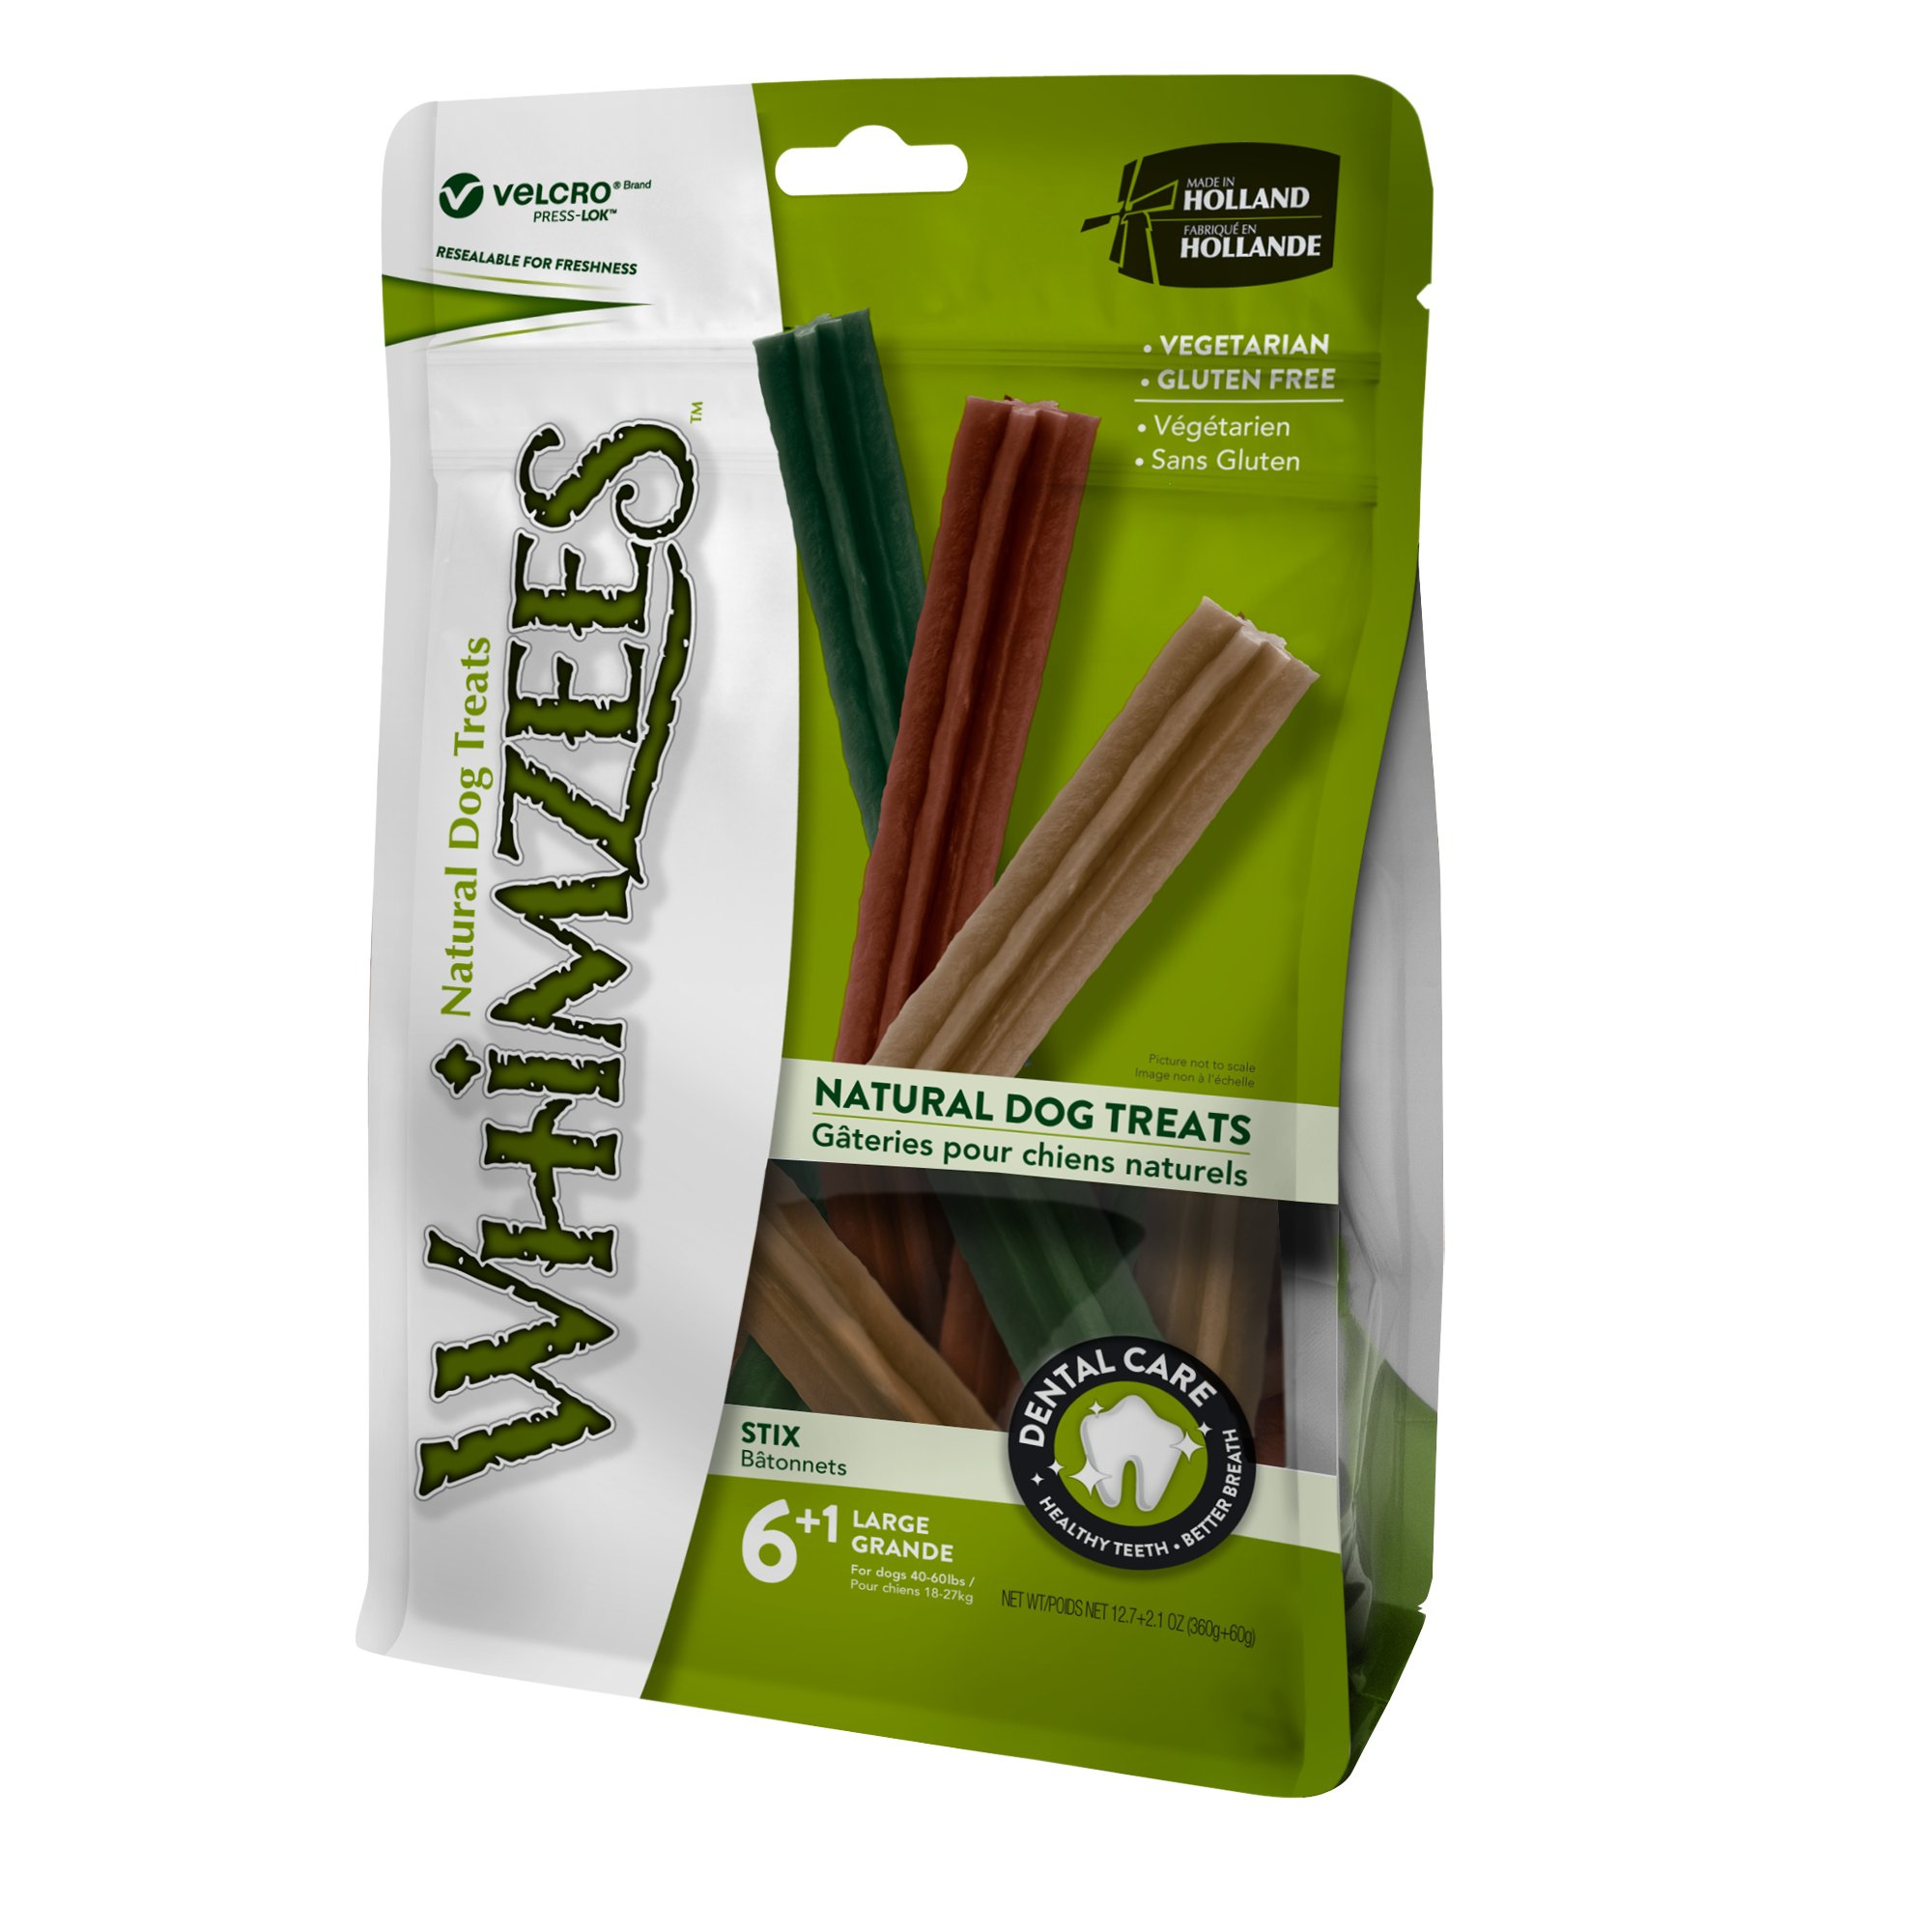 Whimzees Large Stix Dog Treats